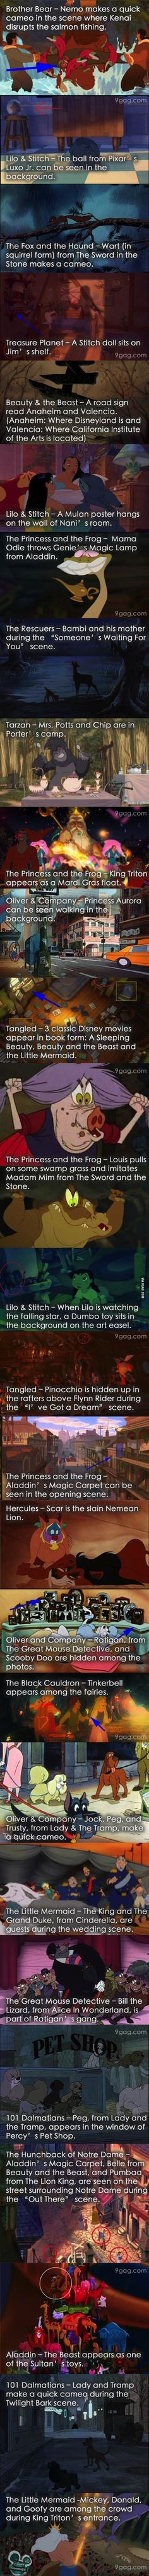 Hidden gems in Disney movies.